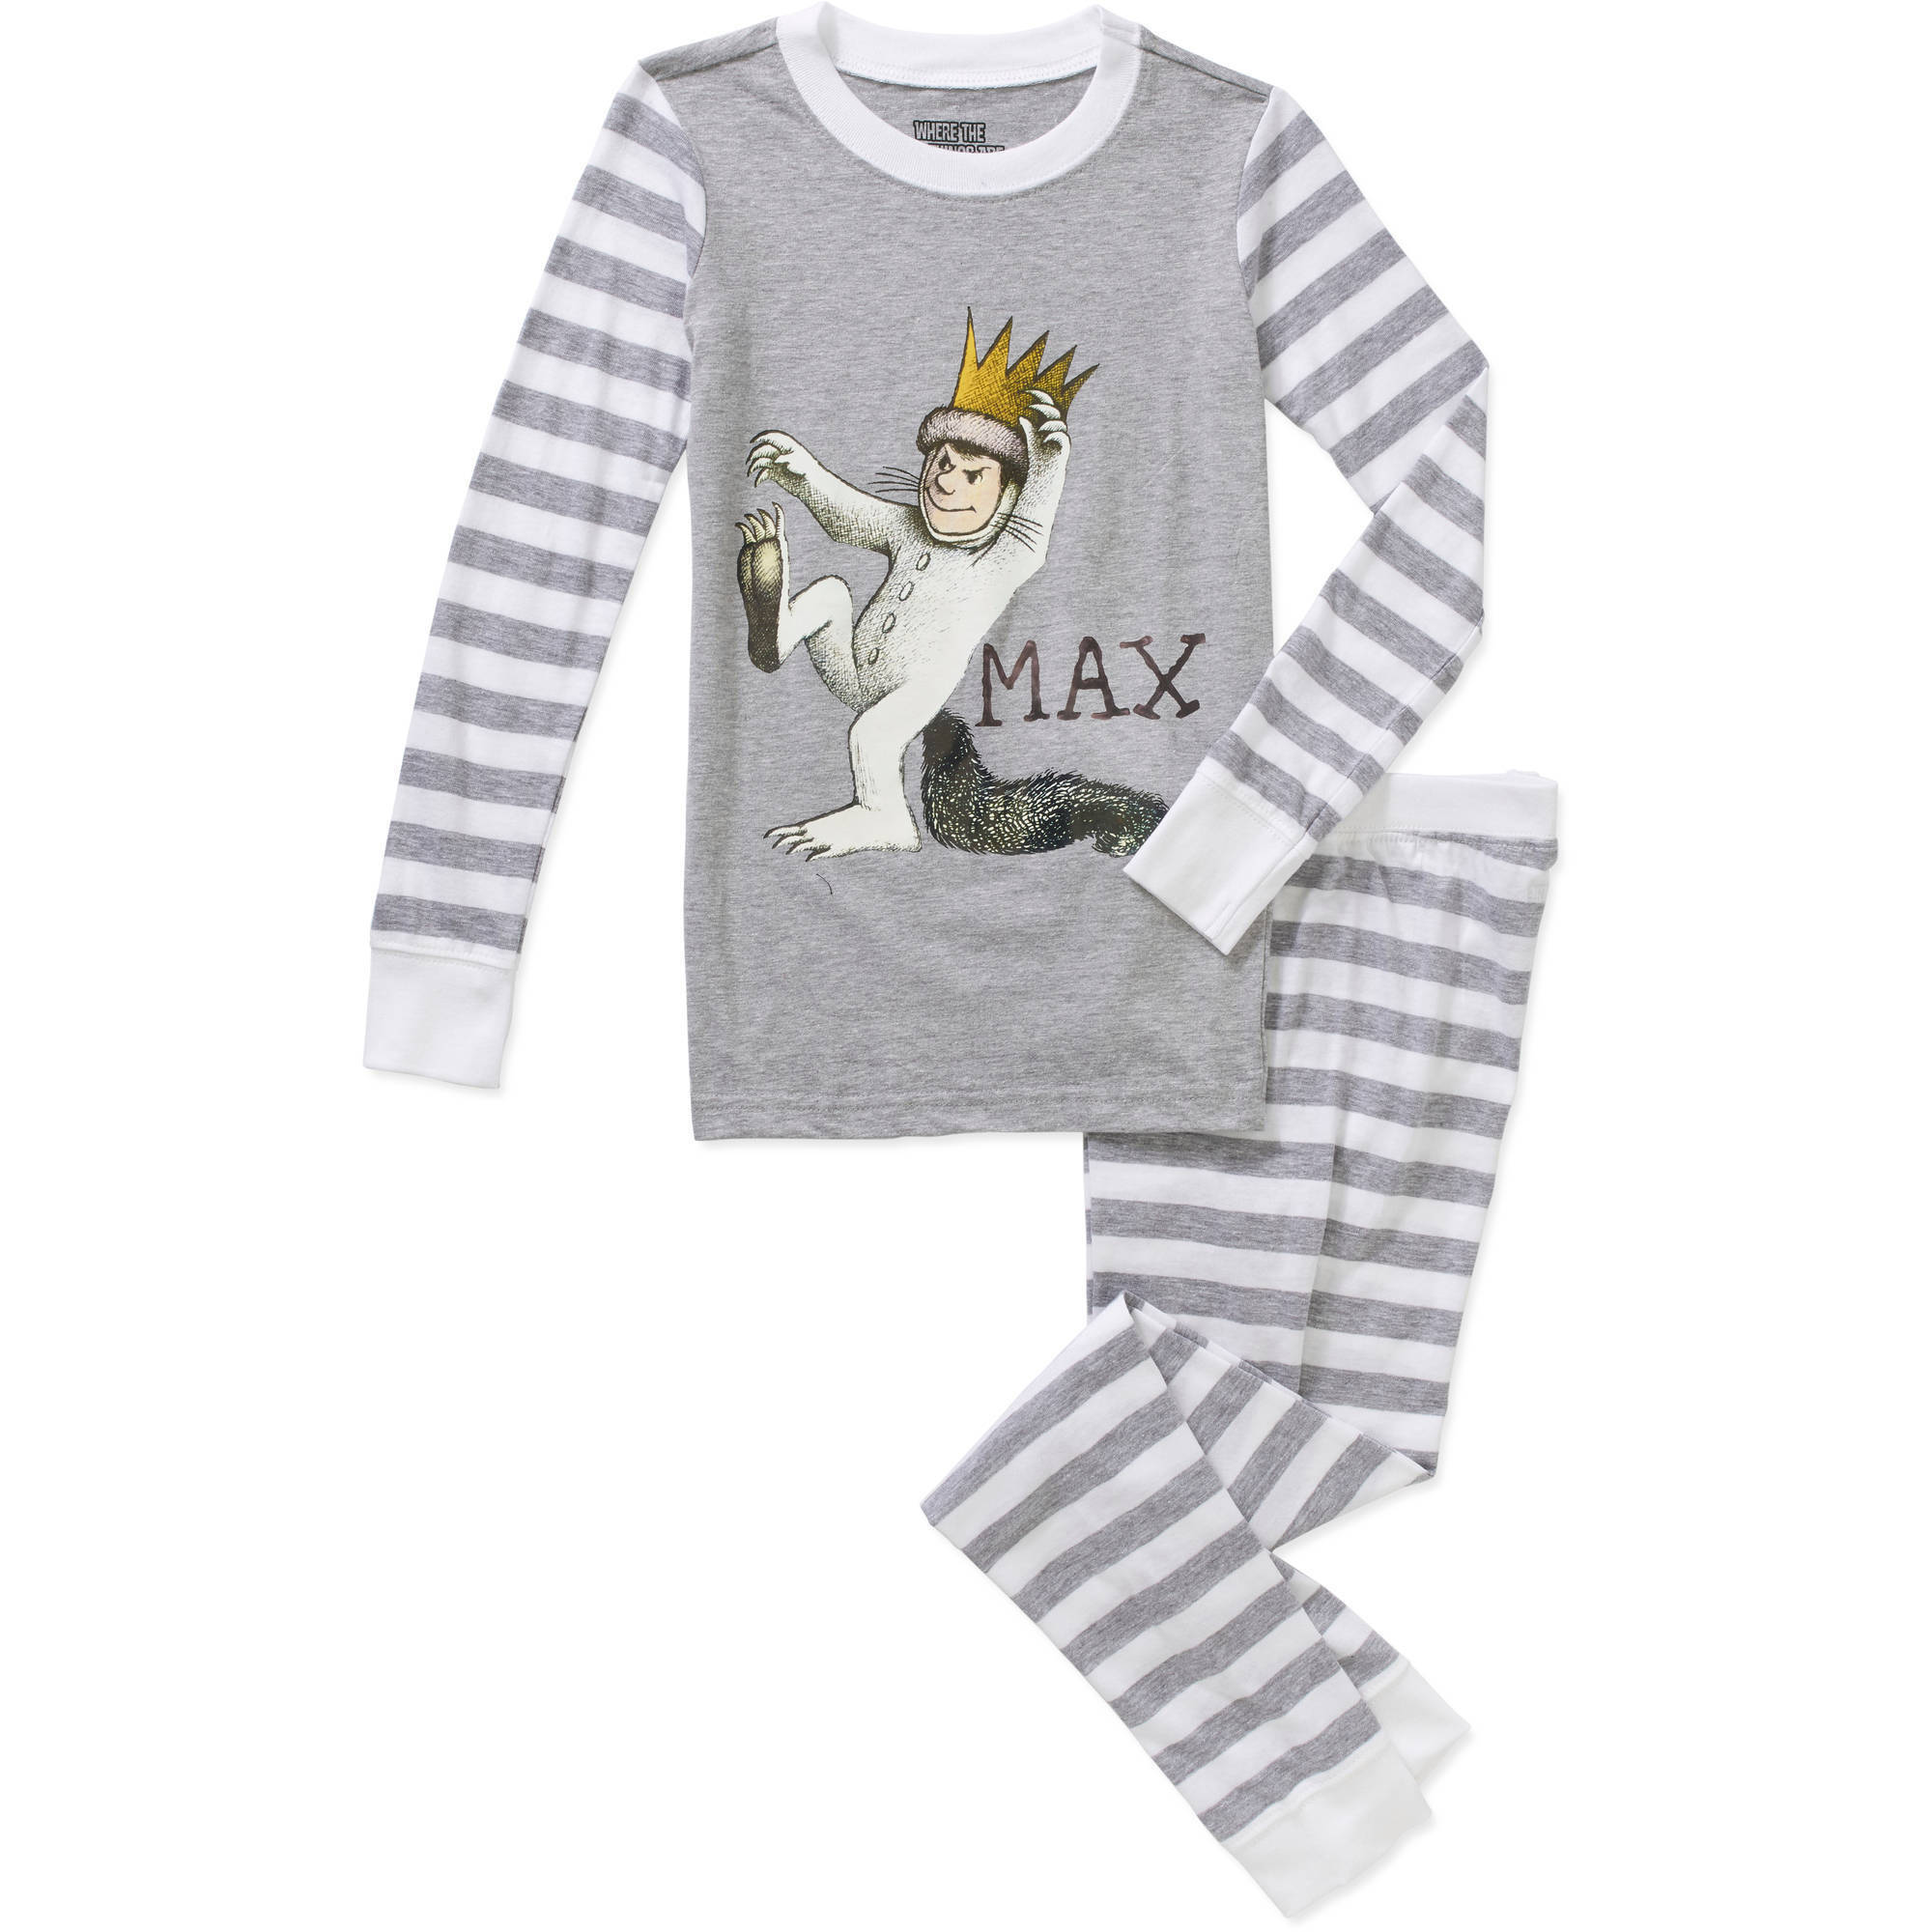 Boys' Licensed Cotton Tight Fit Pajama Sleepwear Set, Available in 5 Characters